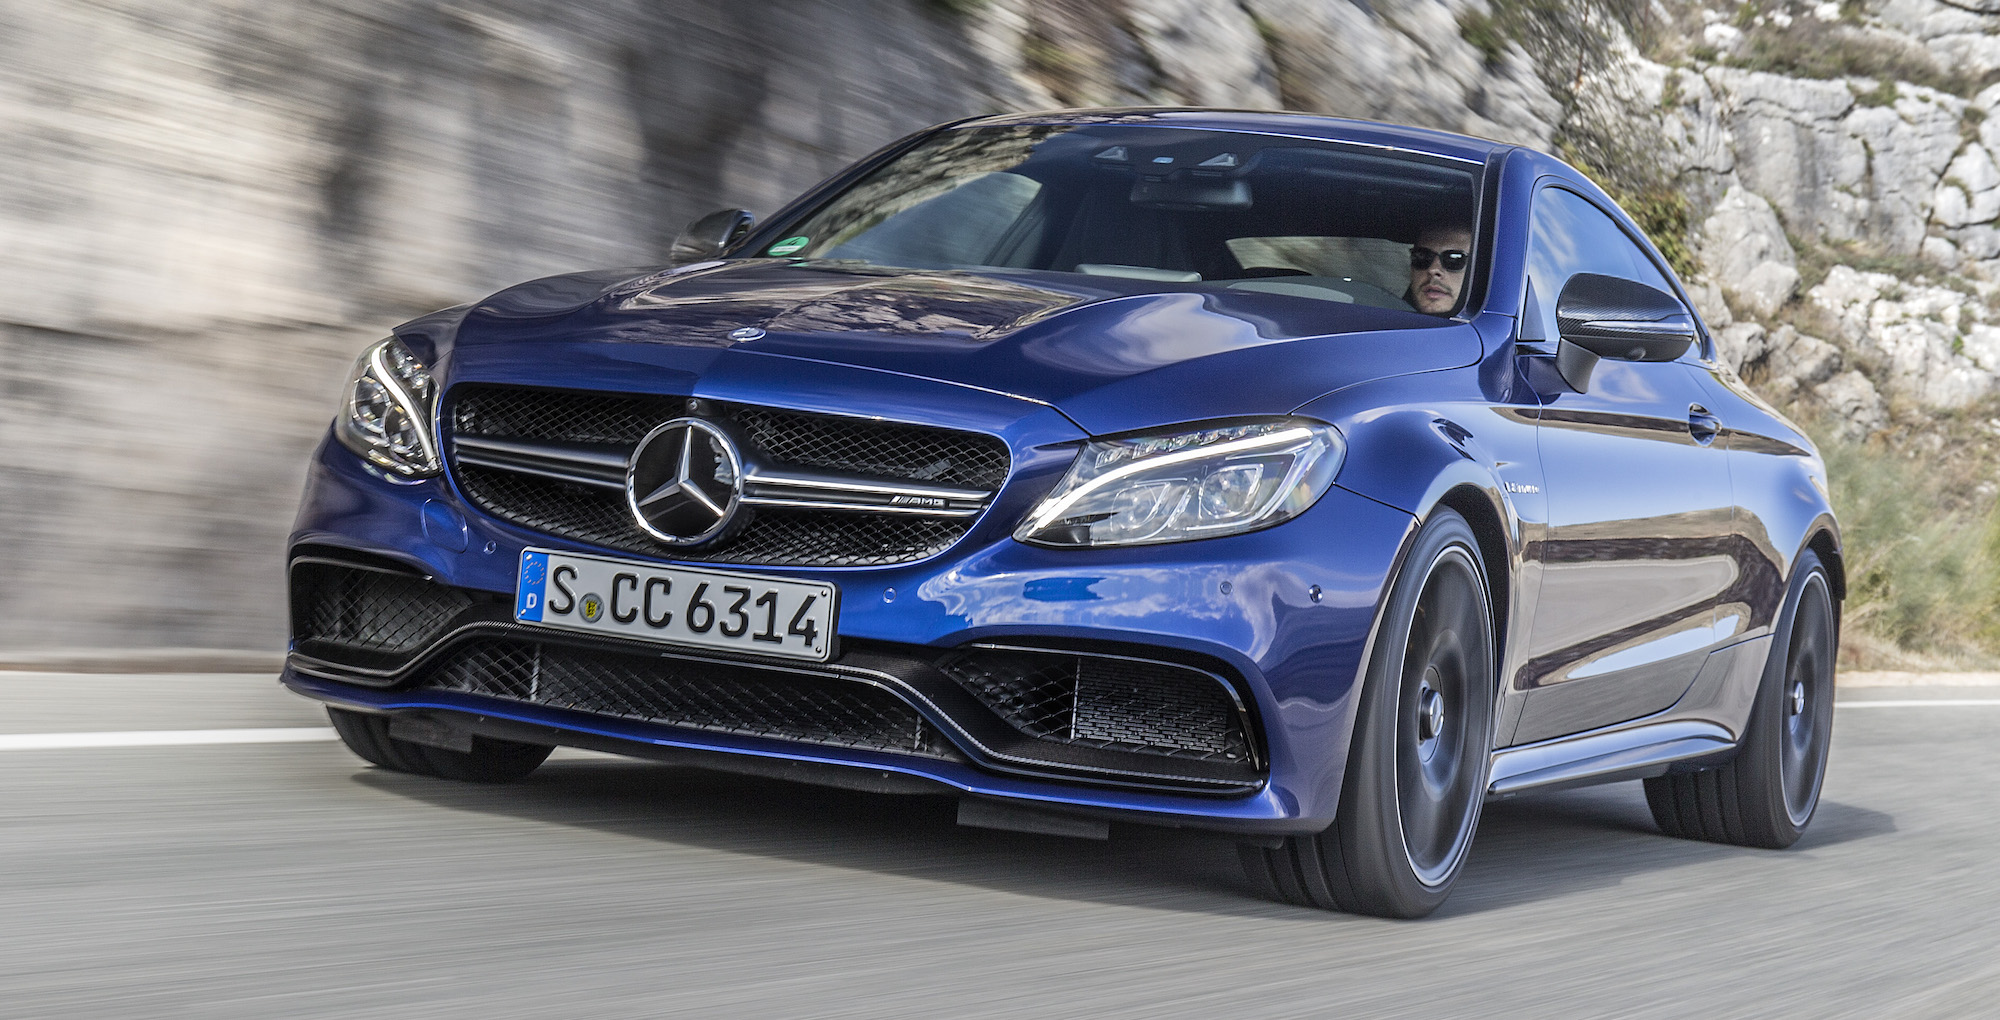 2017 C63 Amg Coupe Price >> 2016 Mercedes-AMG C63 S Coupe Review - photos | CarAdvice